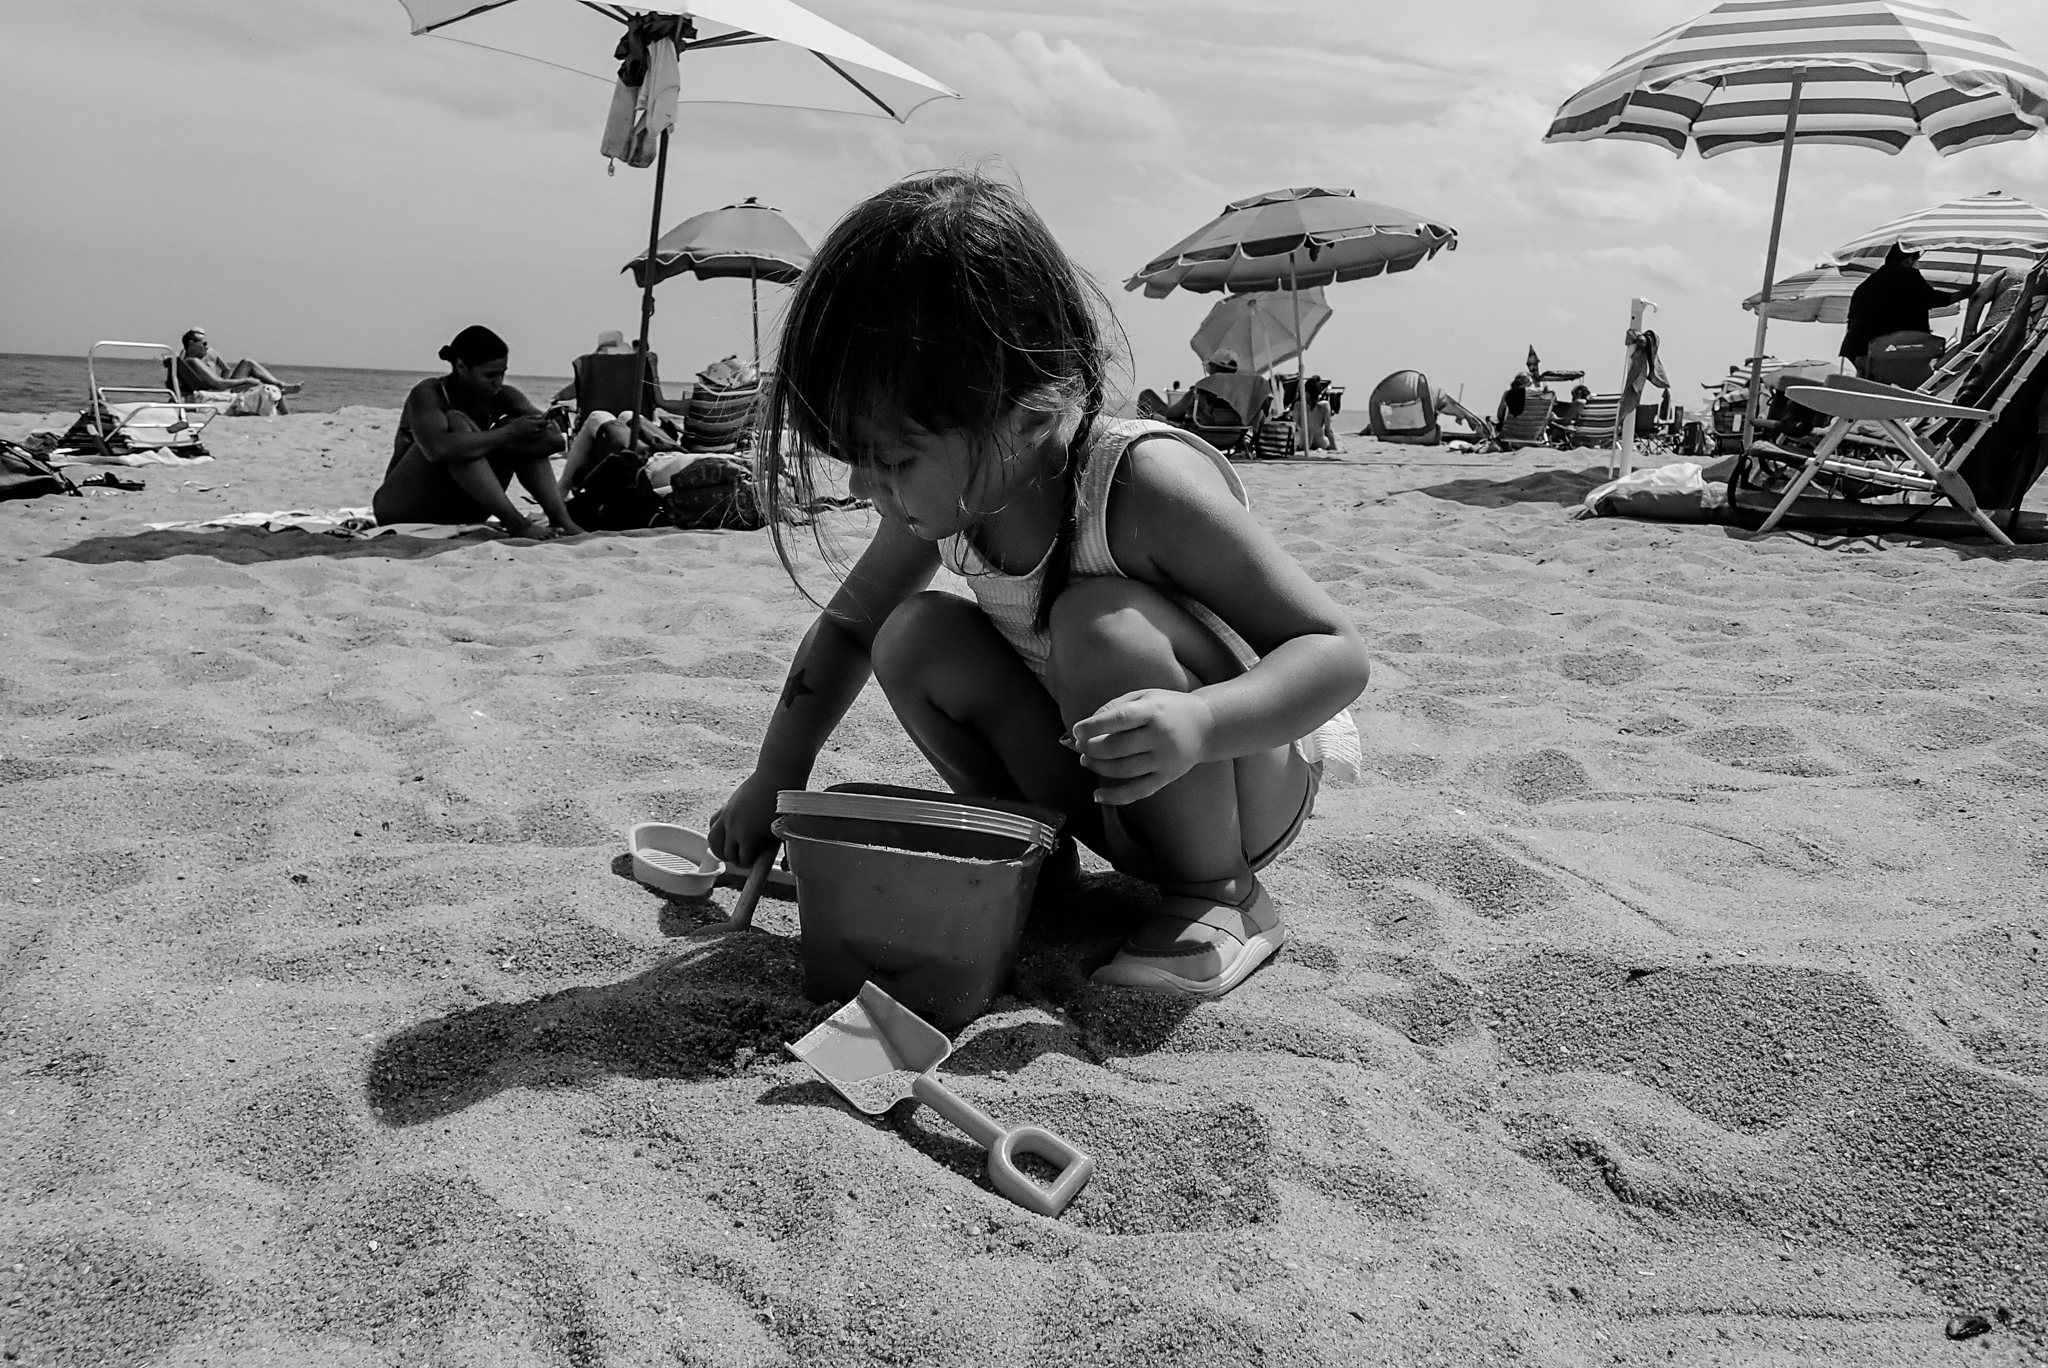 Toddler playing in the sand at the beach during a family vacation in Asbury Park, NJ.